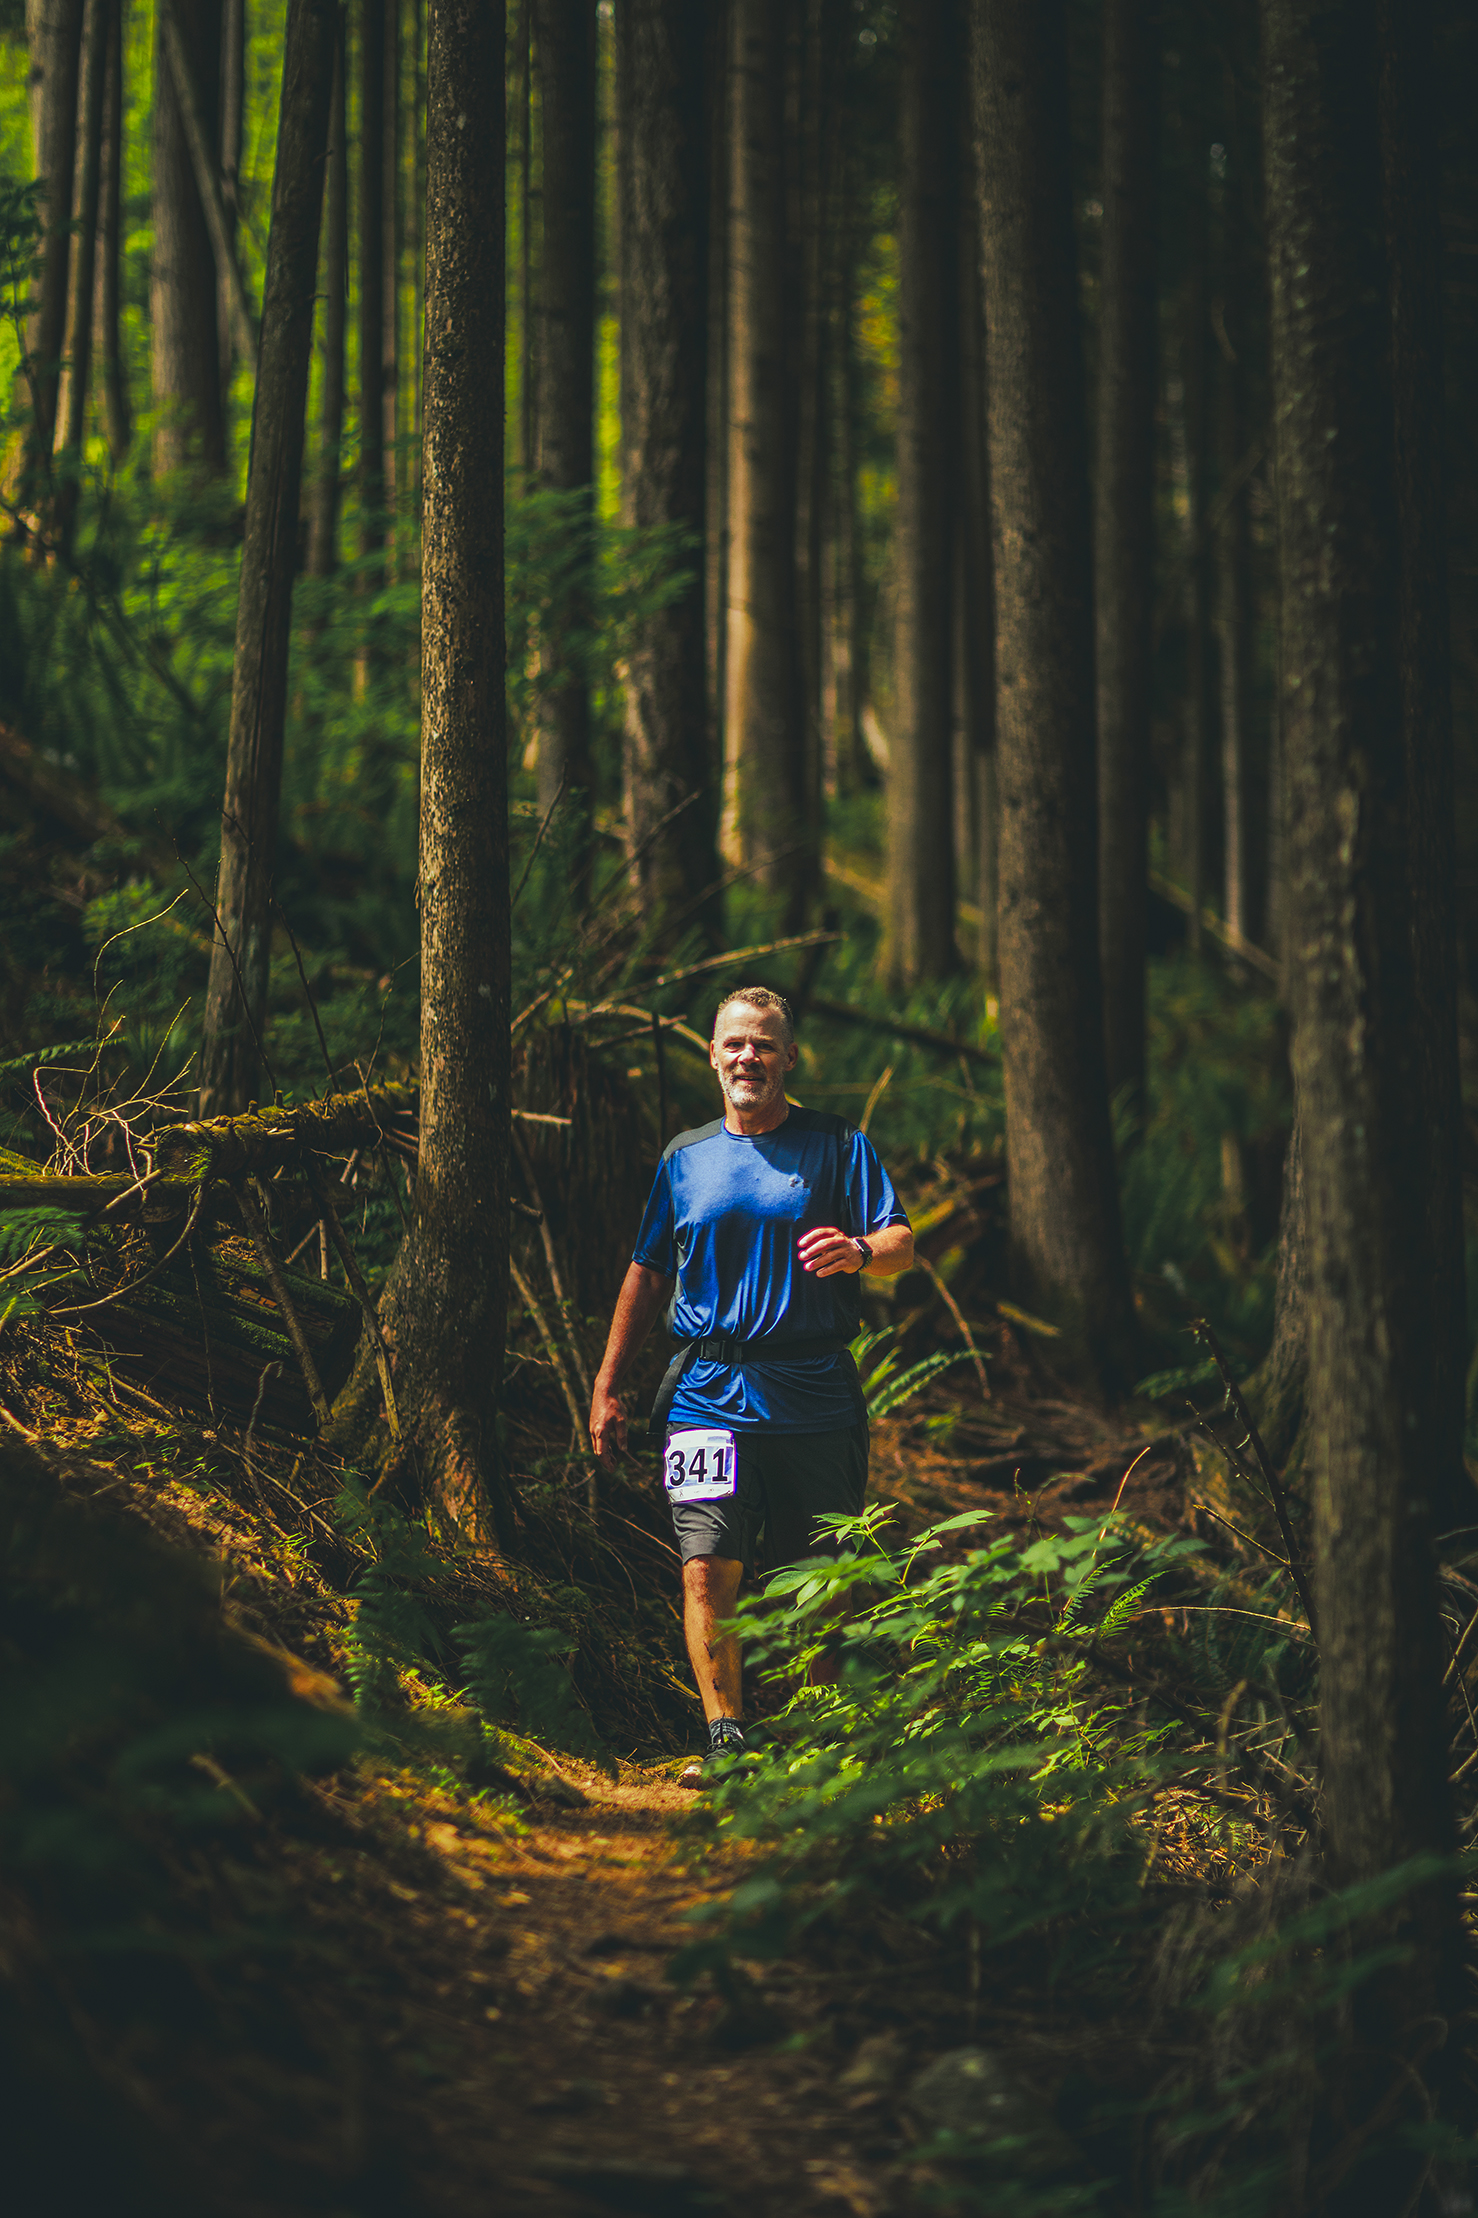 Fraser Valley Trail Races - Bear Mountain - IMG2_2348 by  Brice Ferre Studio - Vancouver Portrait Adventure and Athlete Photographer.jpg